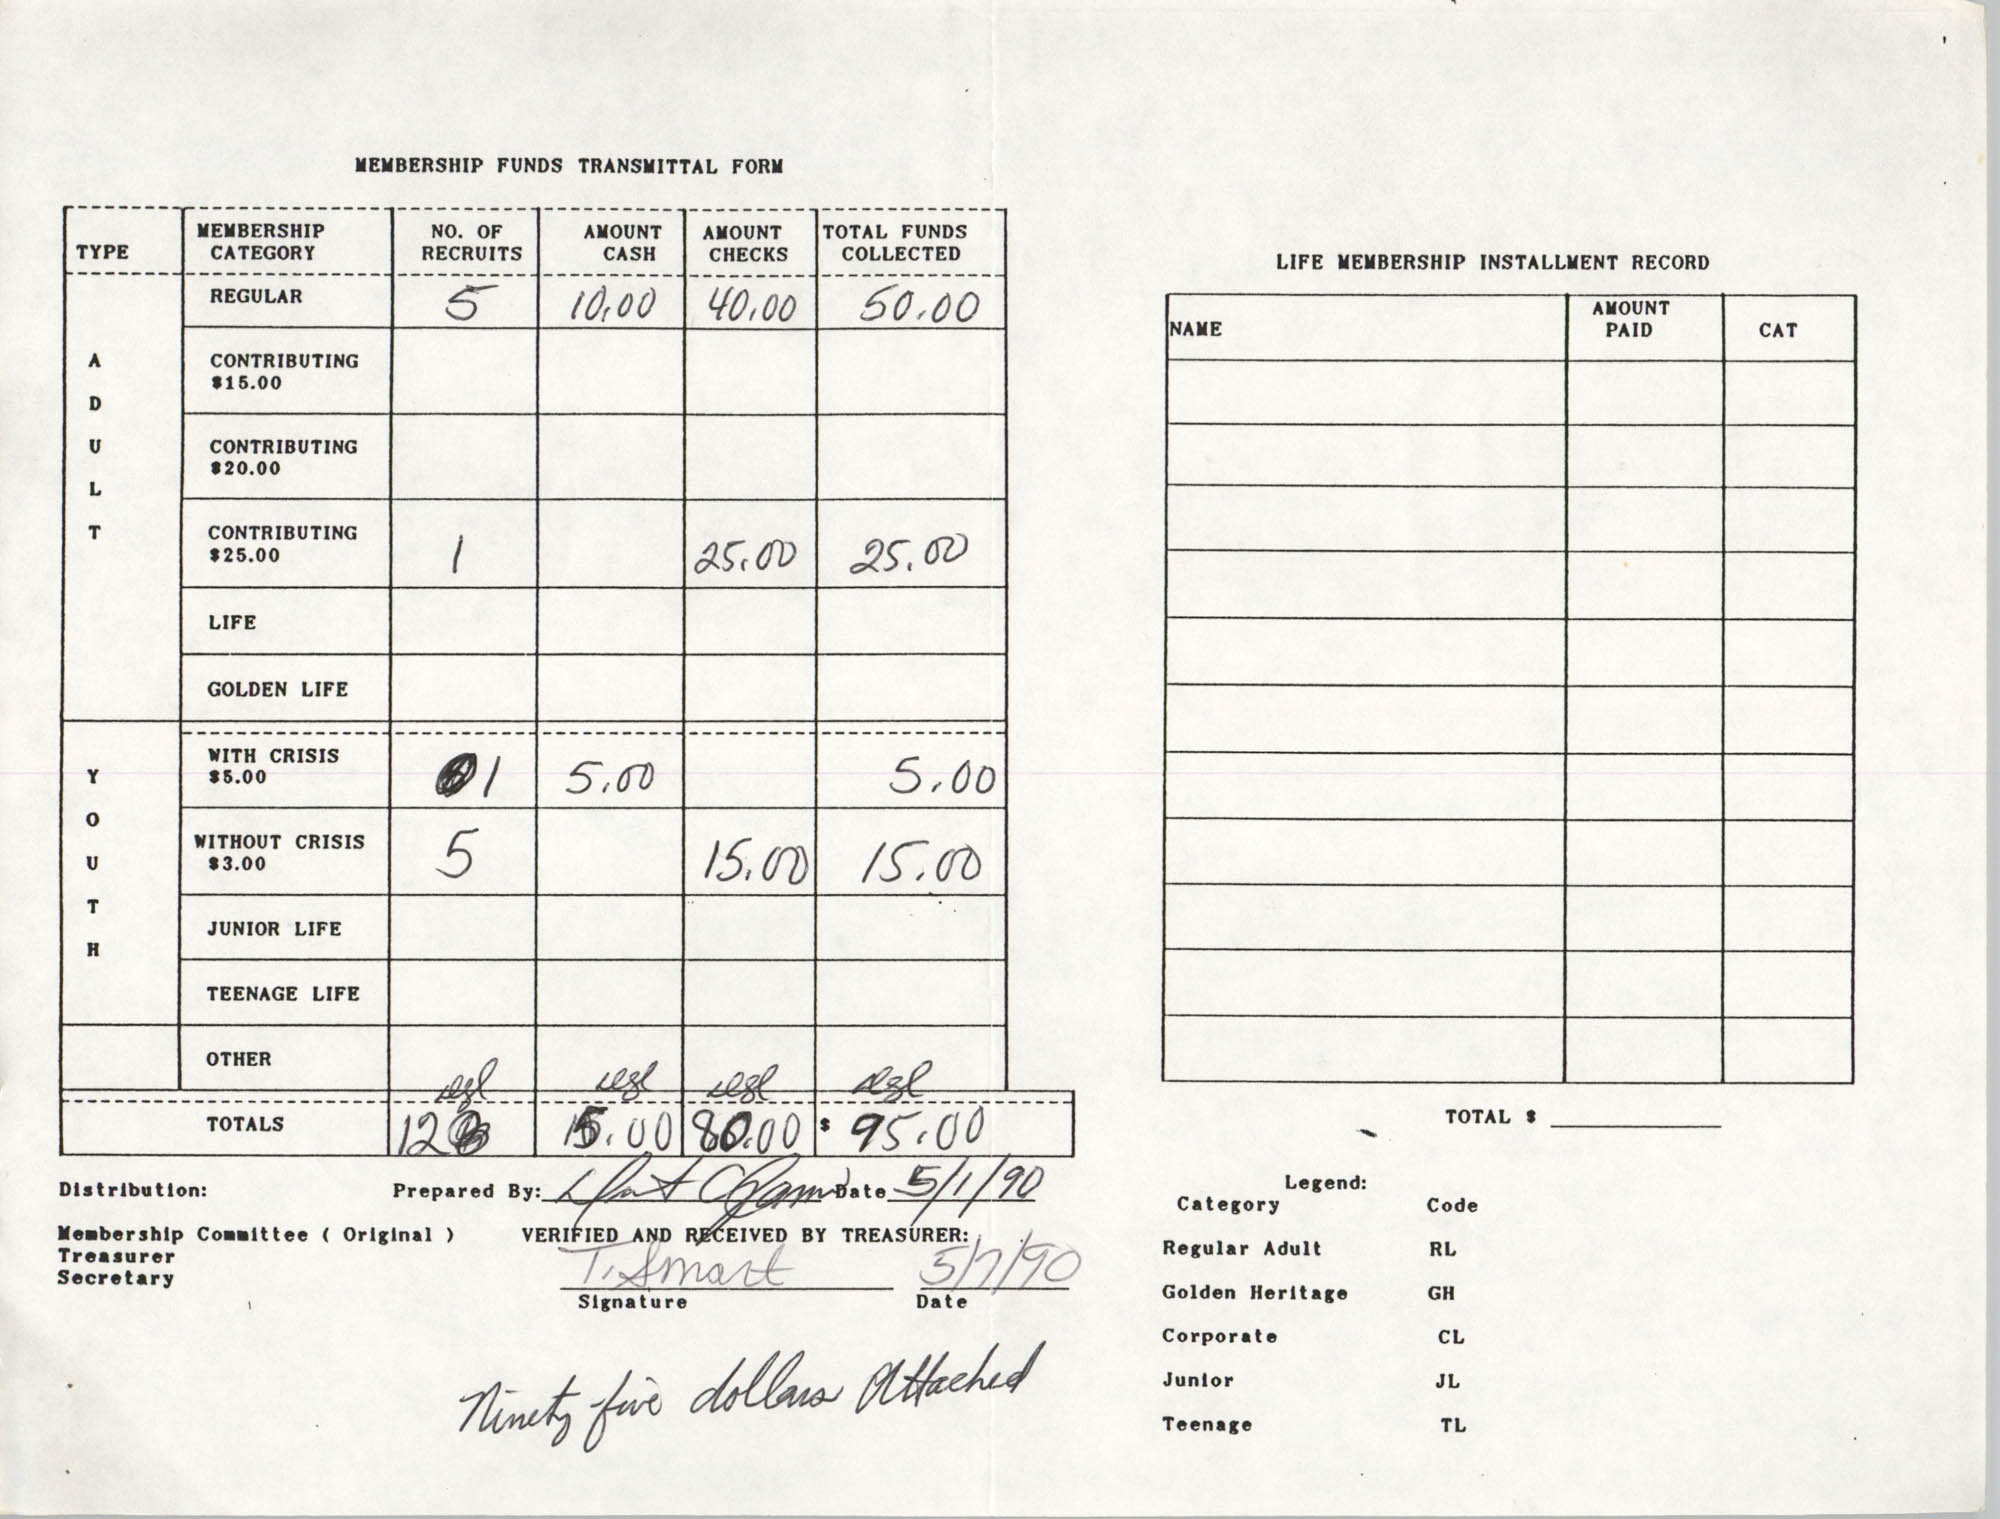 Charleston Branch of the NAACP Membership Funds Transmittal Form, May 1990, Page 1